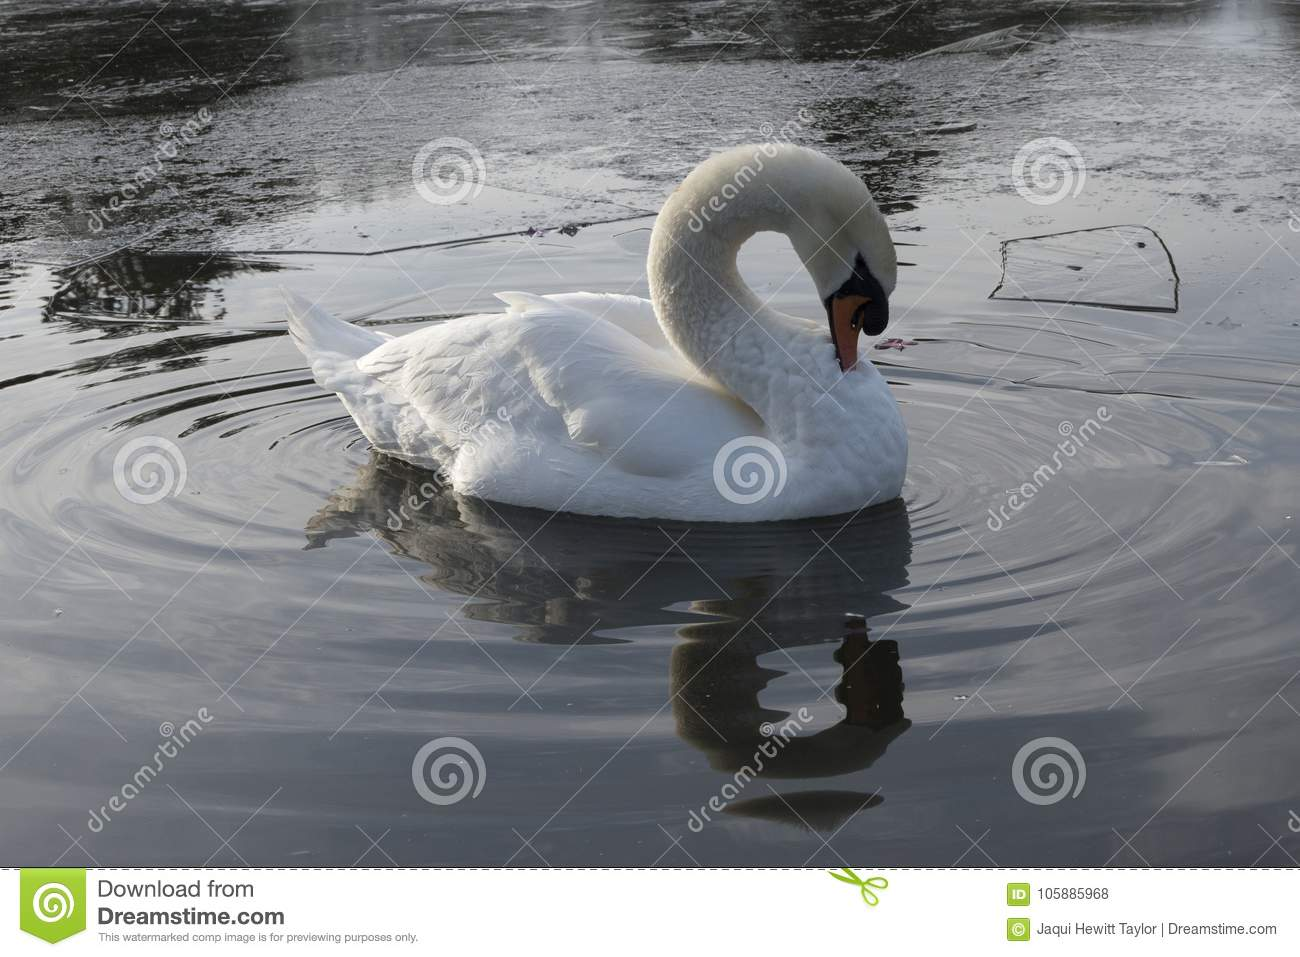 A white swan in an icy pond